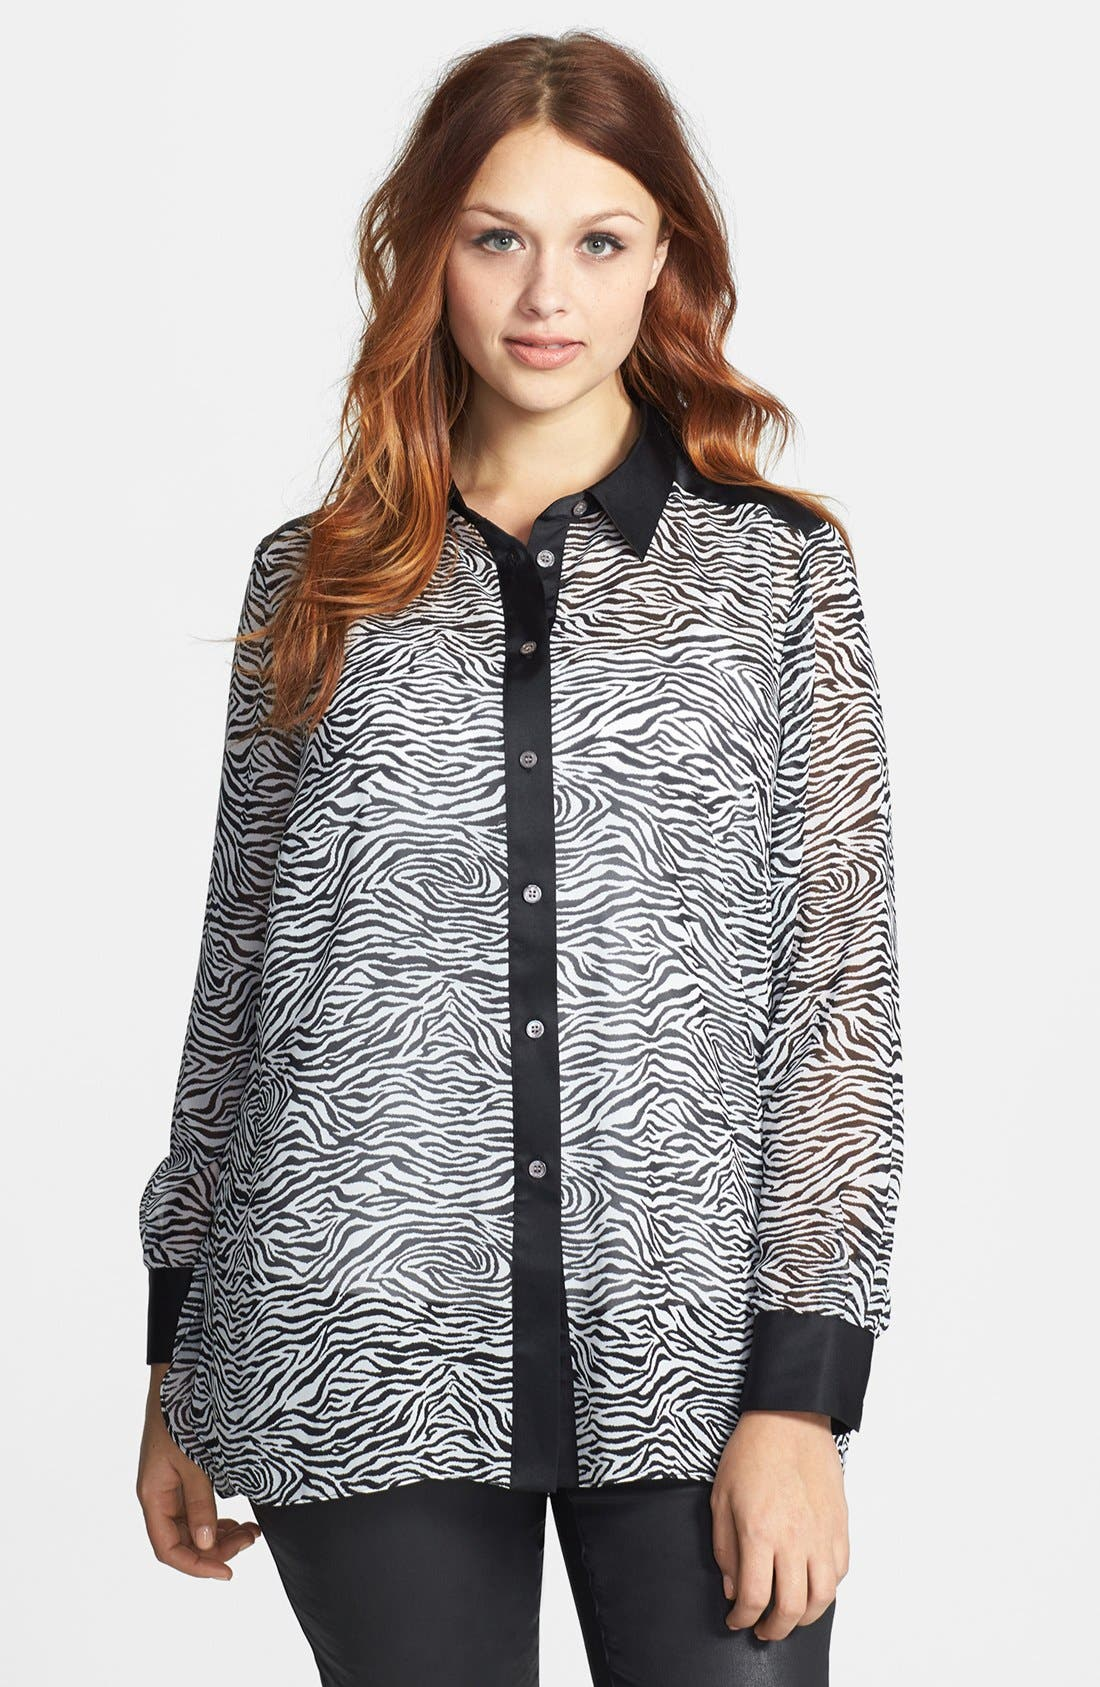 Main Image - Vince Camuto Zebra Print Mixed Media Blouse (Plus Size)